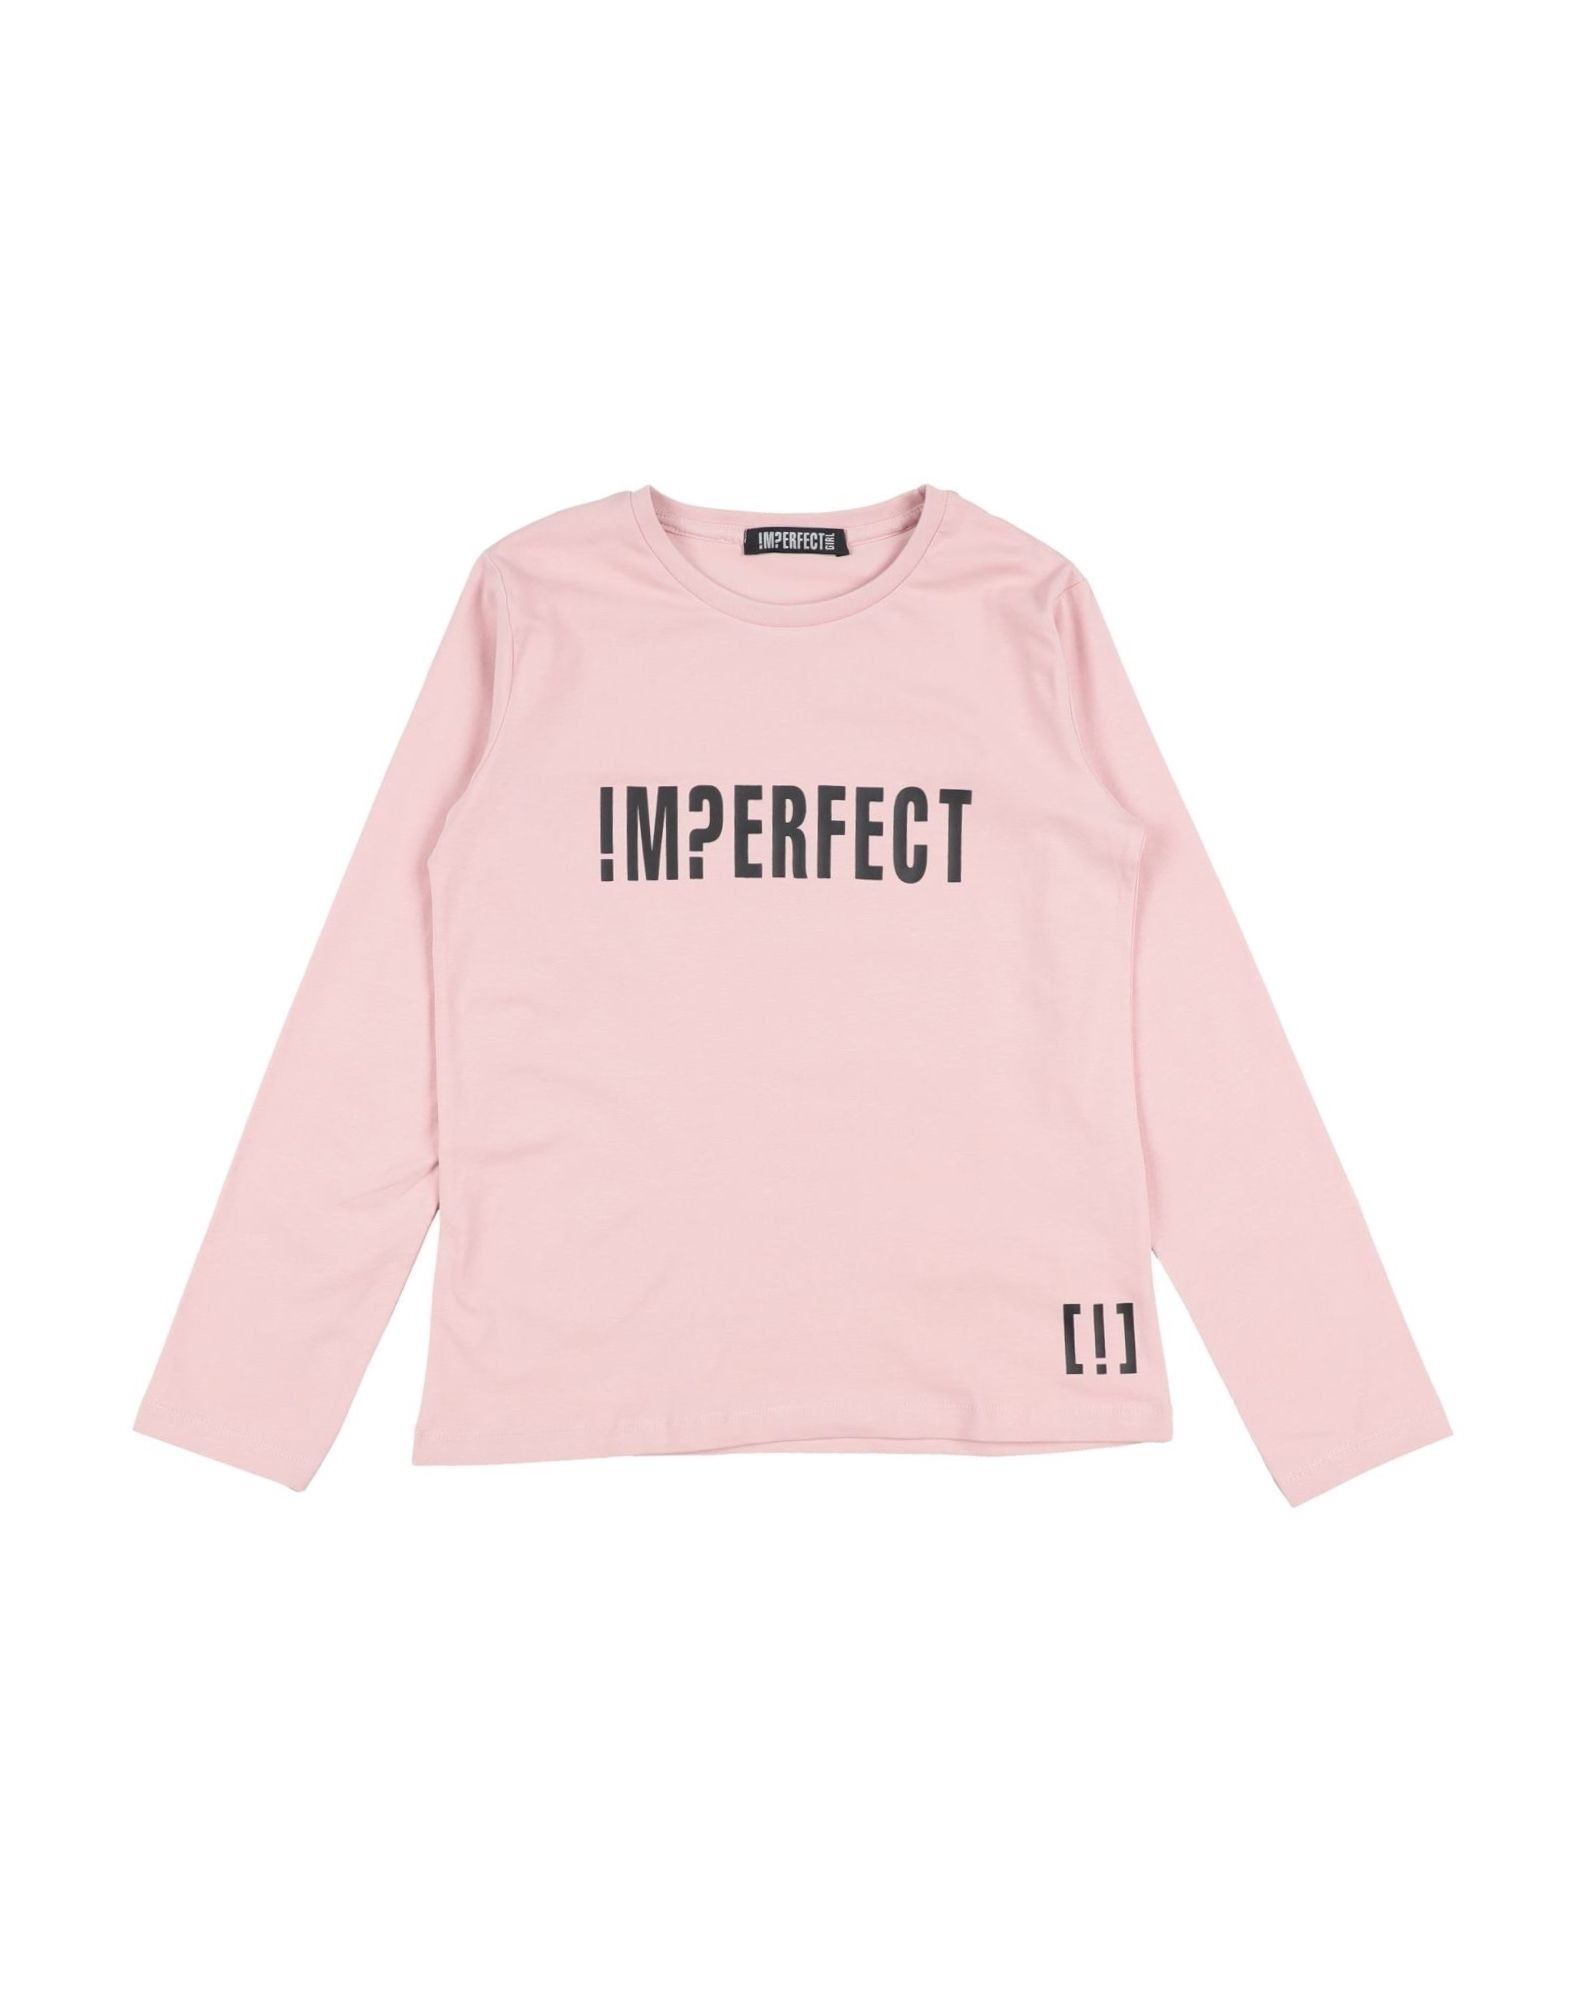 !m?erfect Kids'  T-shirts In Pink